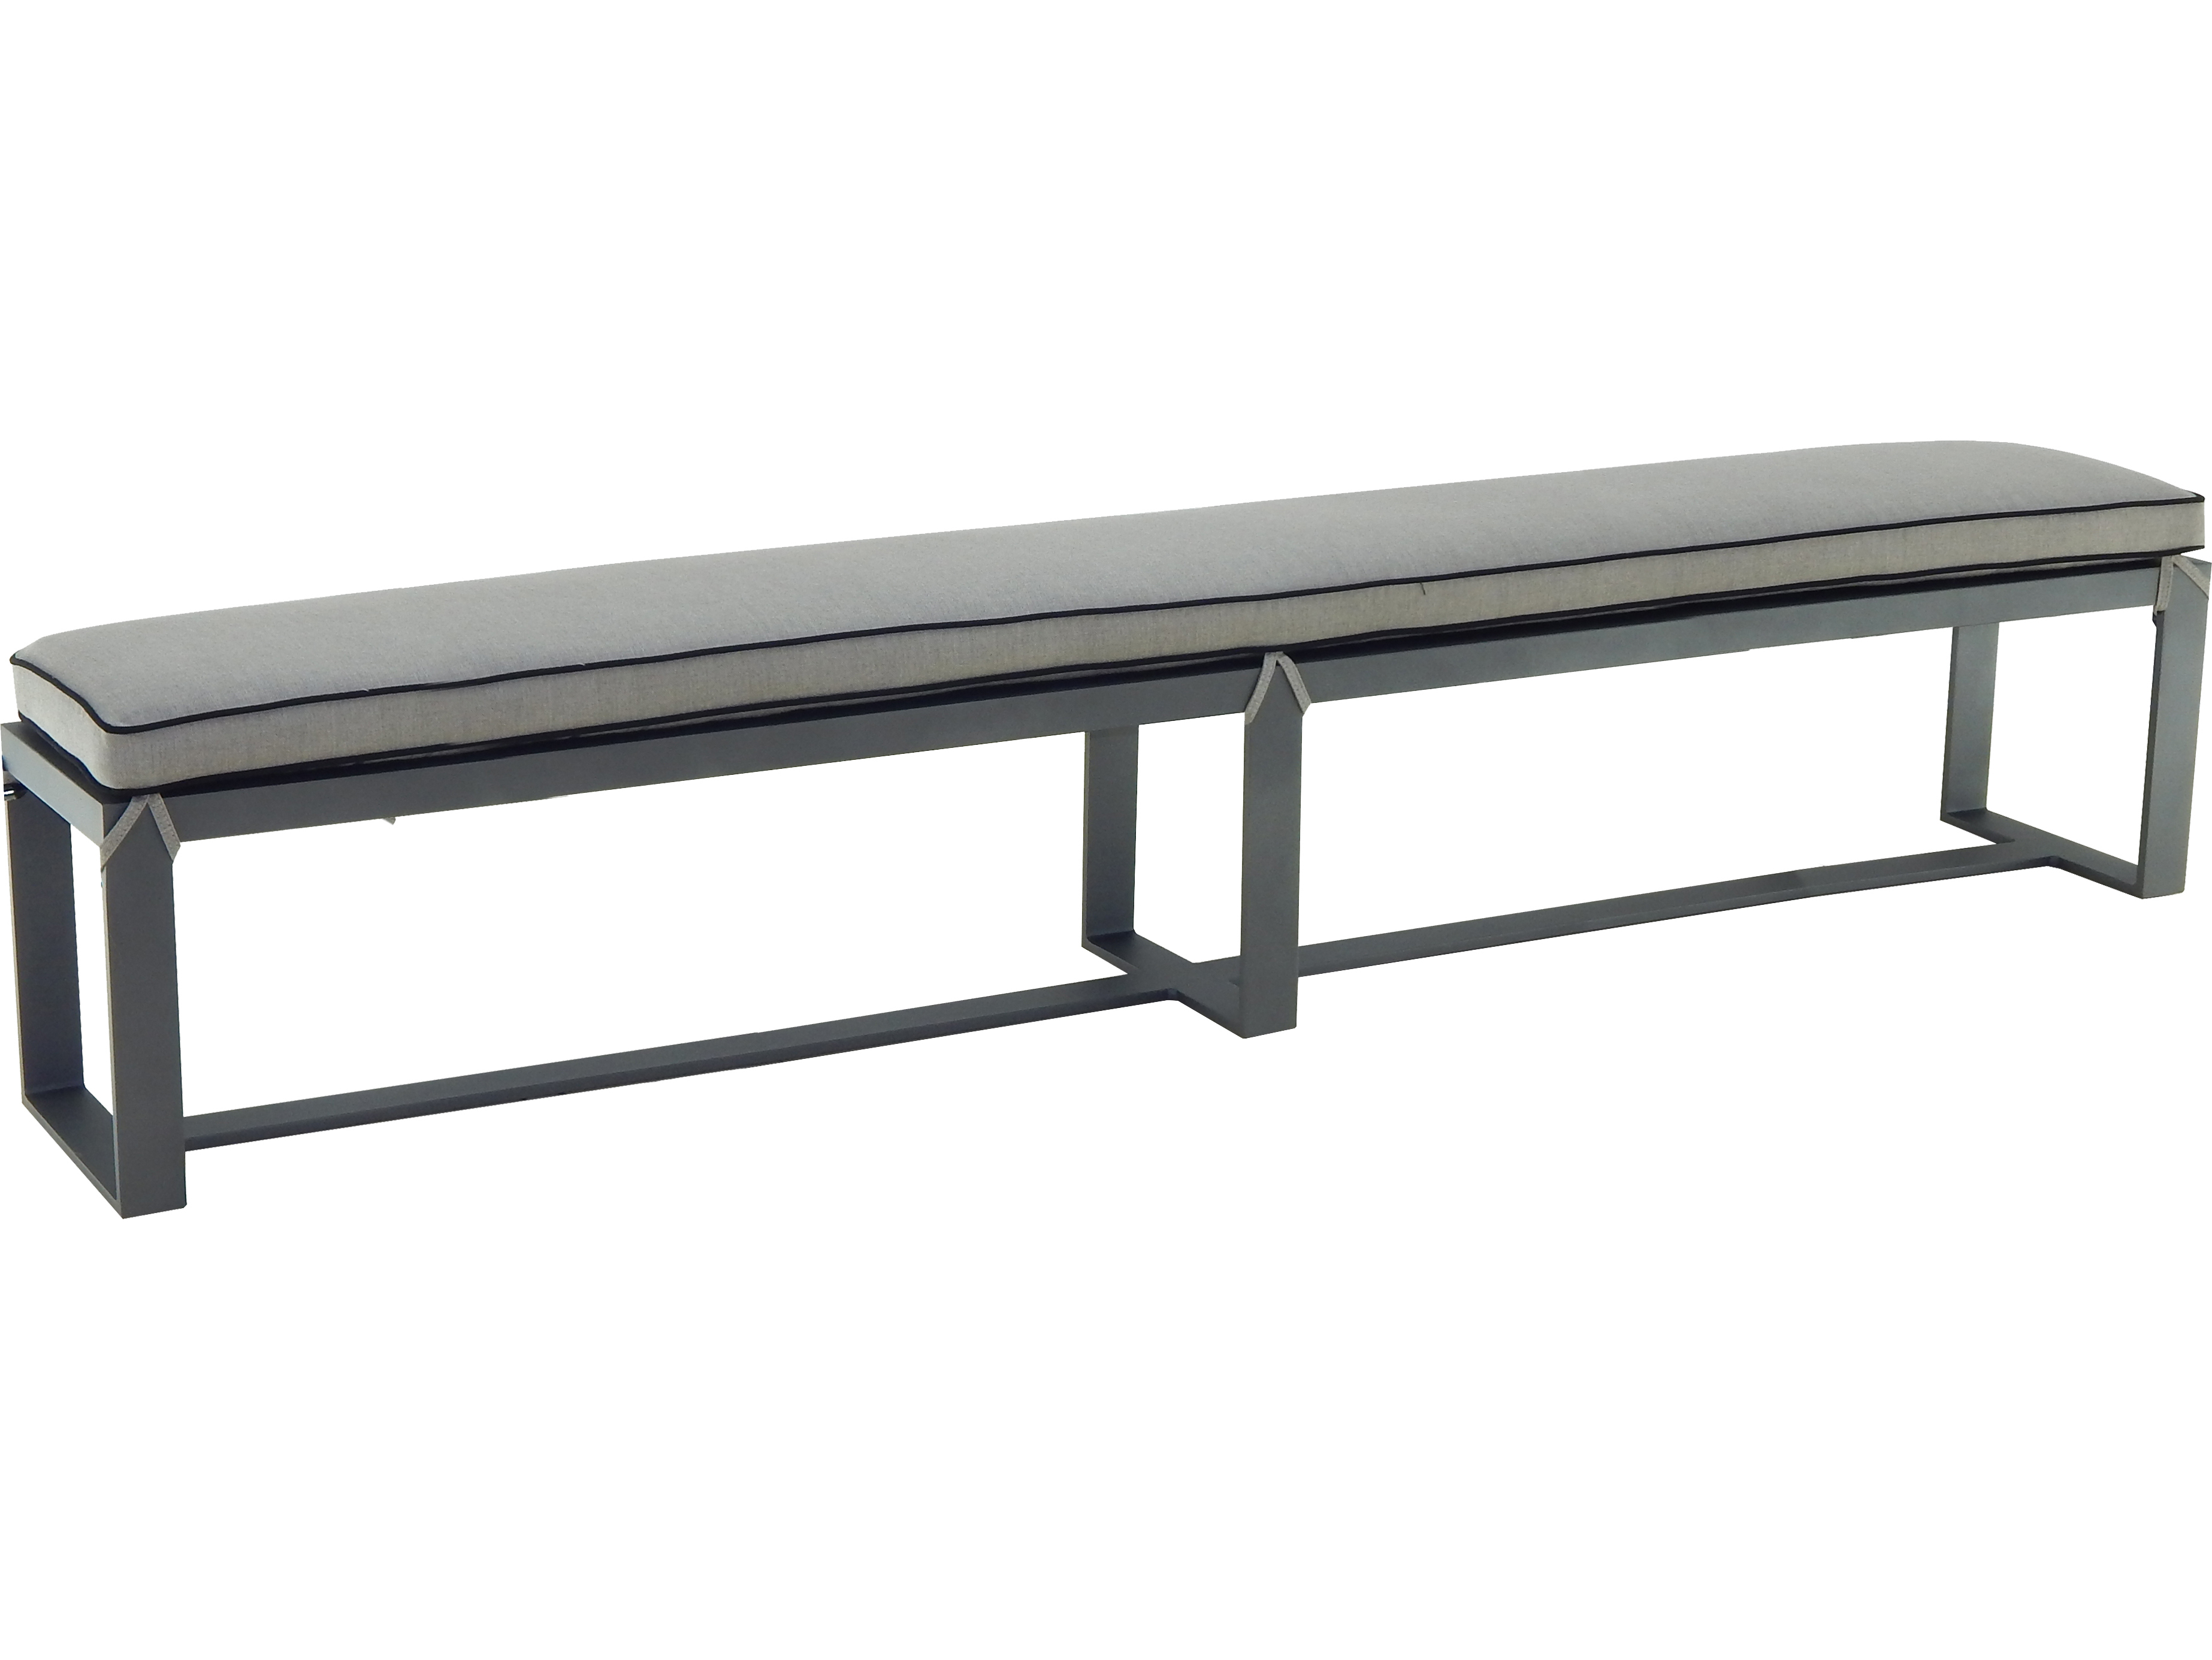 Castelle moderna cast aluminum bench with seat pad hrb108k for 108 table seats how many